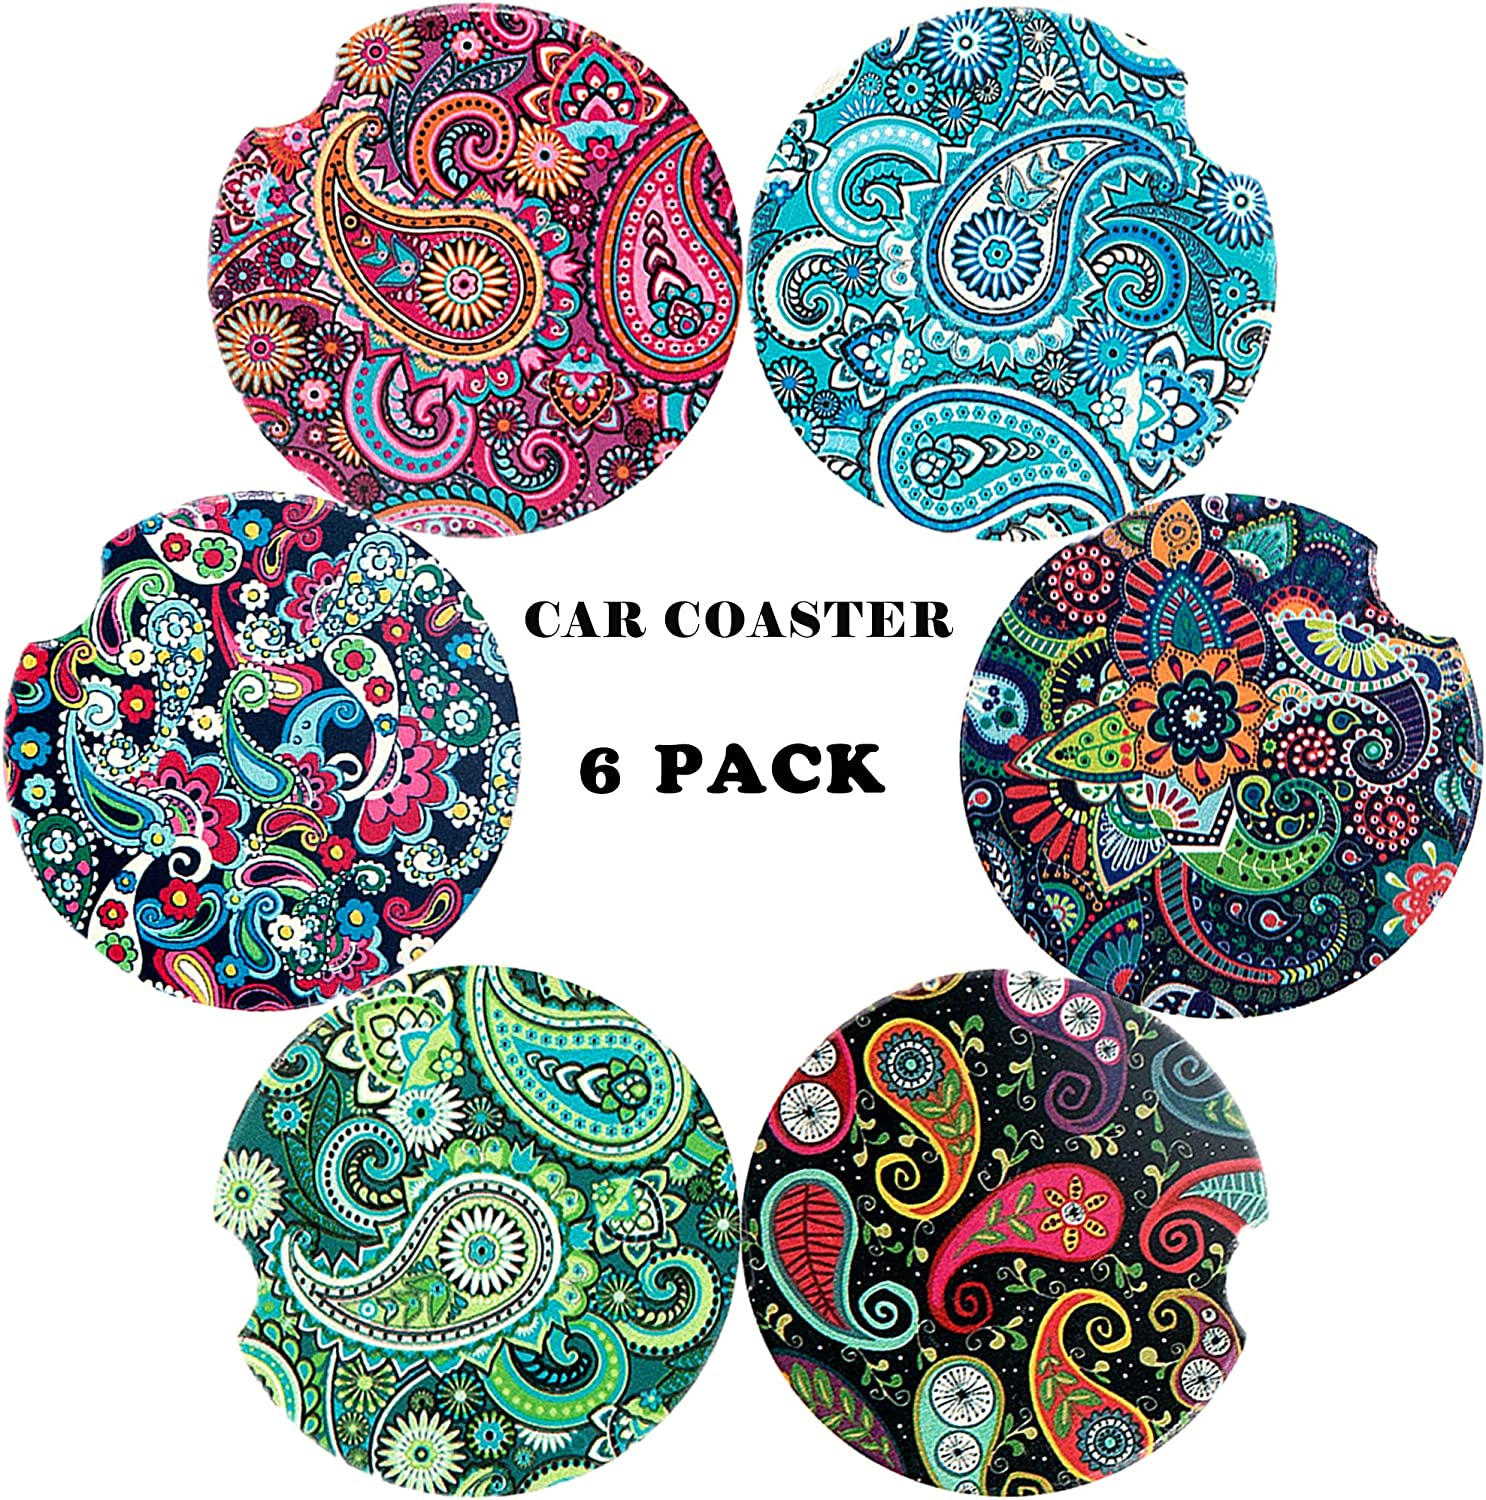 Sansoak Car Coaster Absorbent Mandala Ceramic Car Cup Holder Keeps Vehicle Cup Holders Clean of Cold Drink Spills and Condensation 4 Pack Ceramic Stone with A Finger Notch for Easy Removal